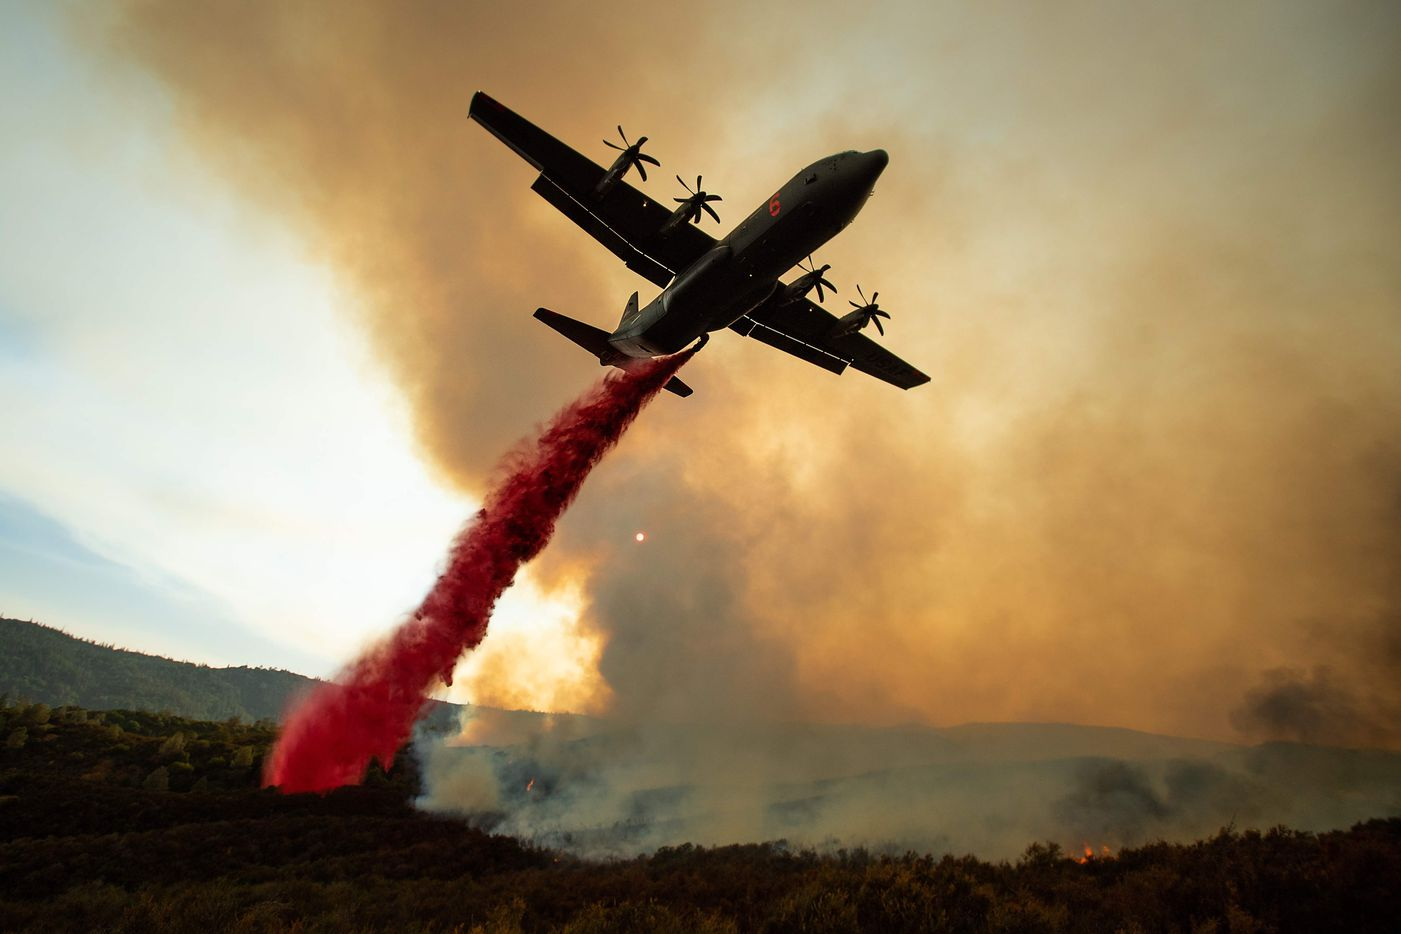 An air tanker drops retardant on the Ranch Fire, part of the Mendocino Complex Fire, burning along High Valley Rd near Clearlake Oaks, California, on August 5, 2018. Several thousand people have been evacuated as various fires swept across the state, although some have been given permission in recent days to return to their homes. / AFP PHOTO / NOAH BERGERNOAH BERGER/AFP/Getty Images